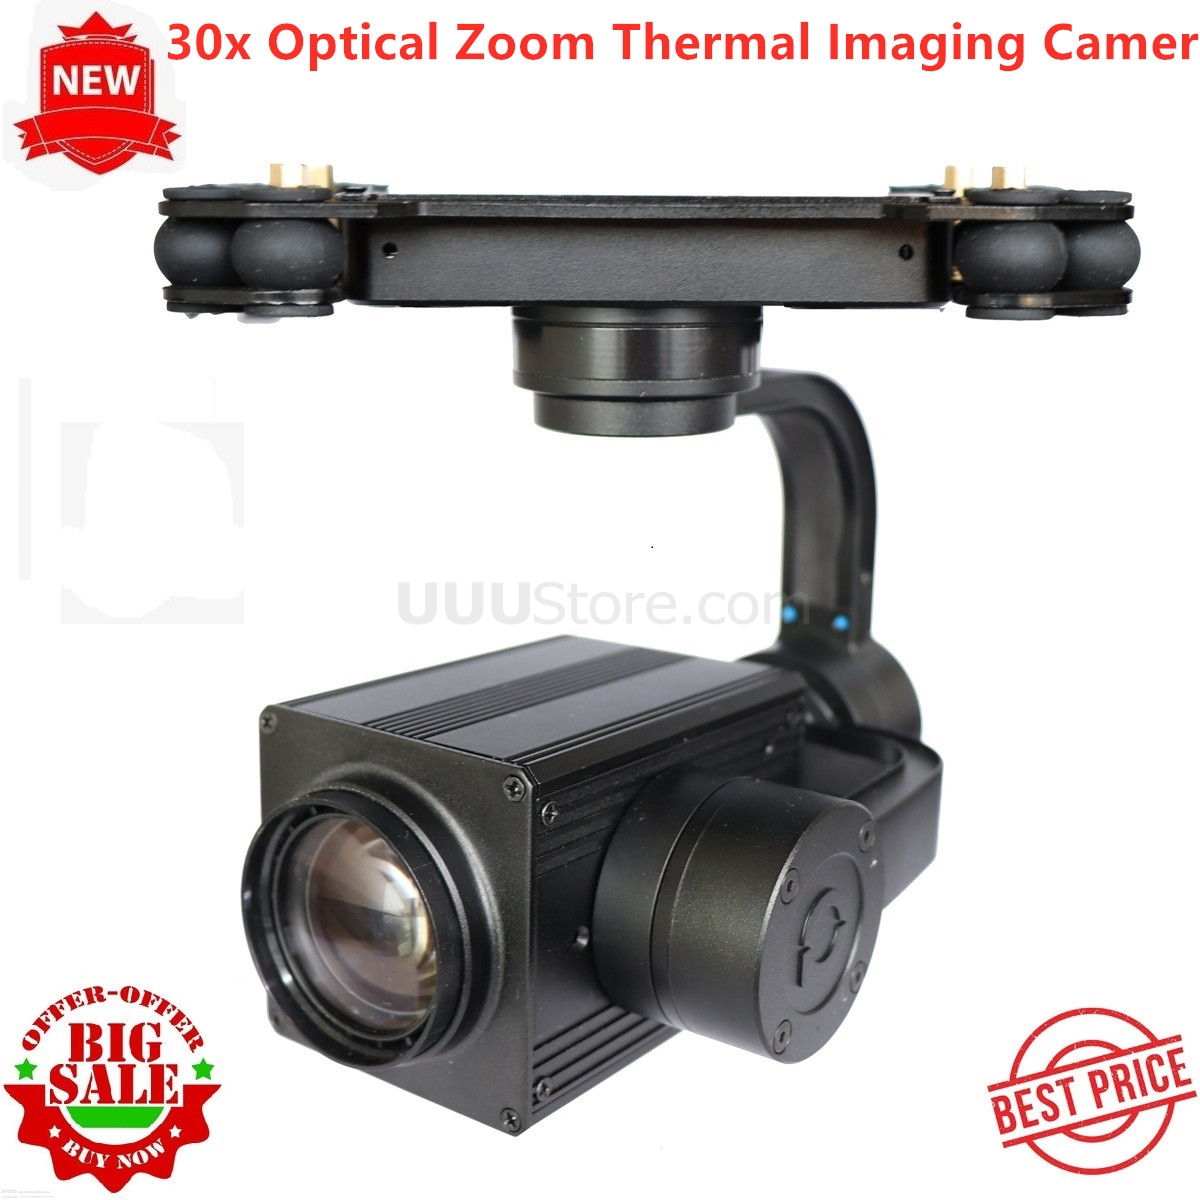 US $1765 8 |5 30KM 30x Optical Zoom Thermal Imaging UAV Drone Infrared  Camera & 3 Axis Stabilizer And Automatic Tracking-in Parts & Accessories  from